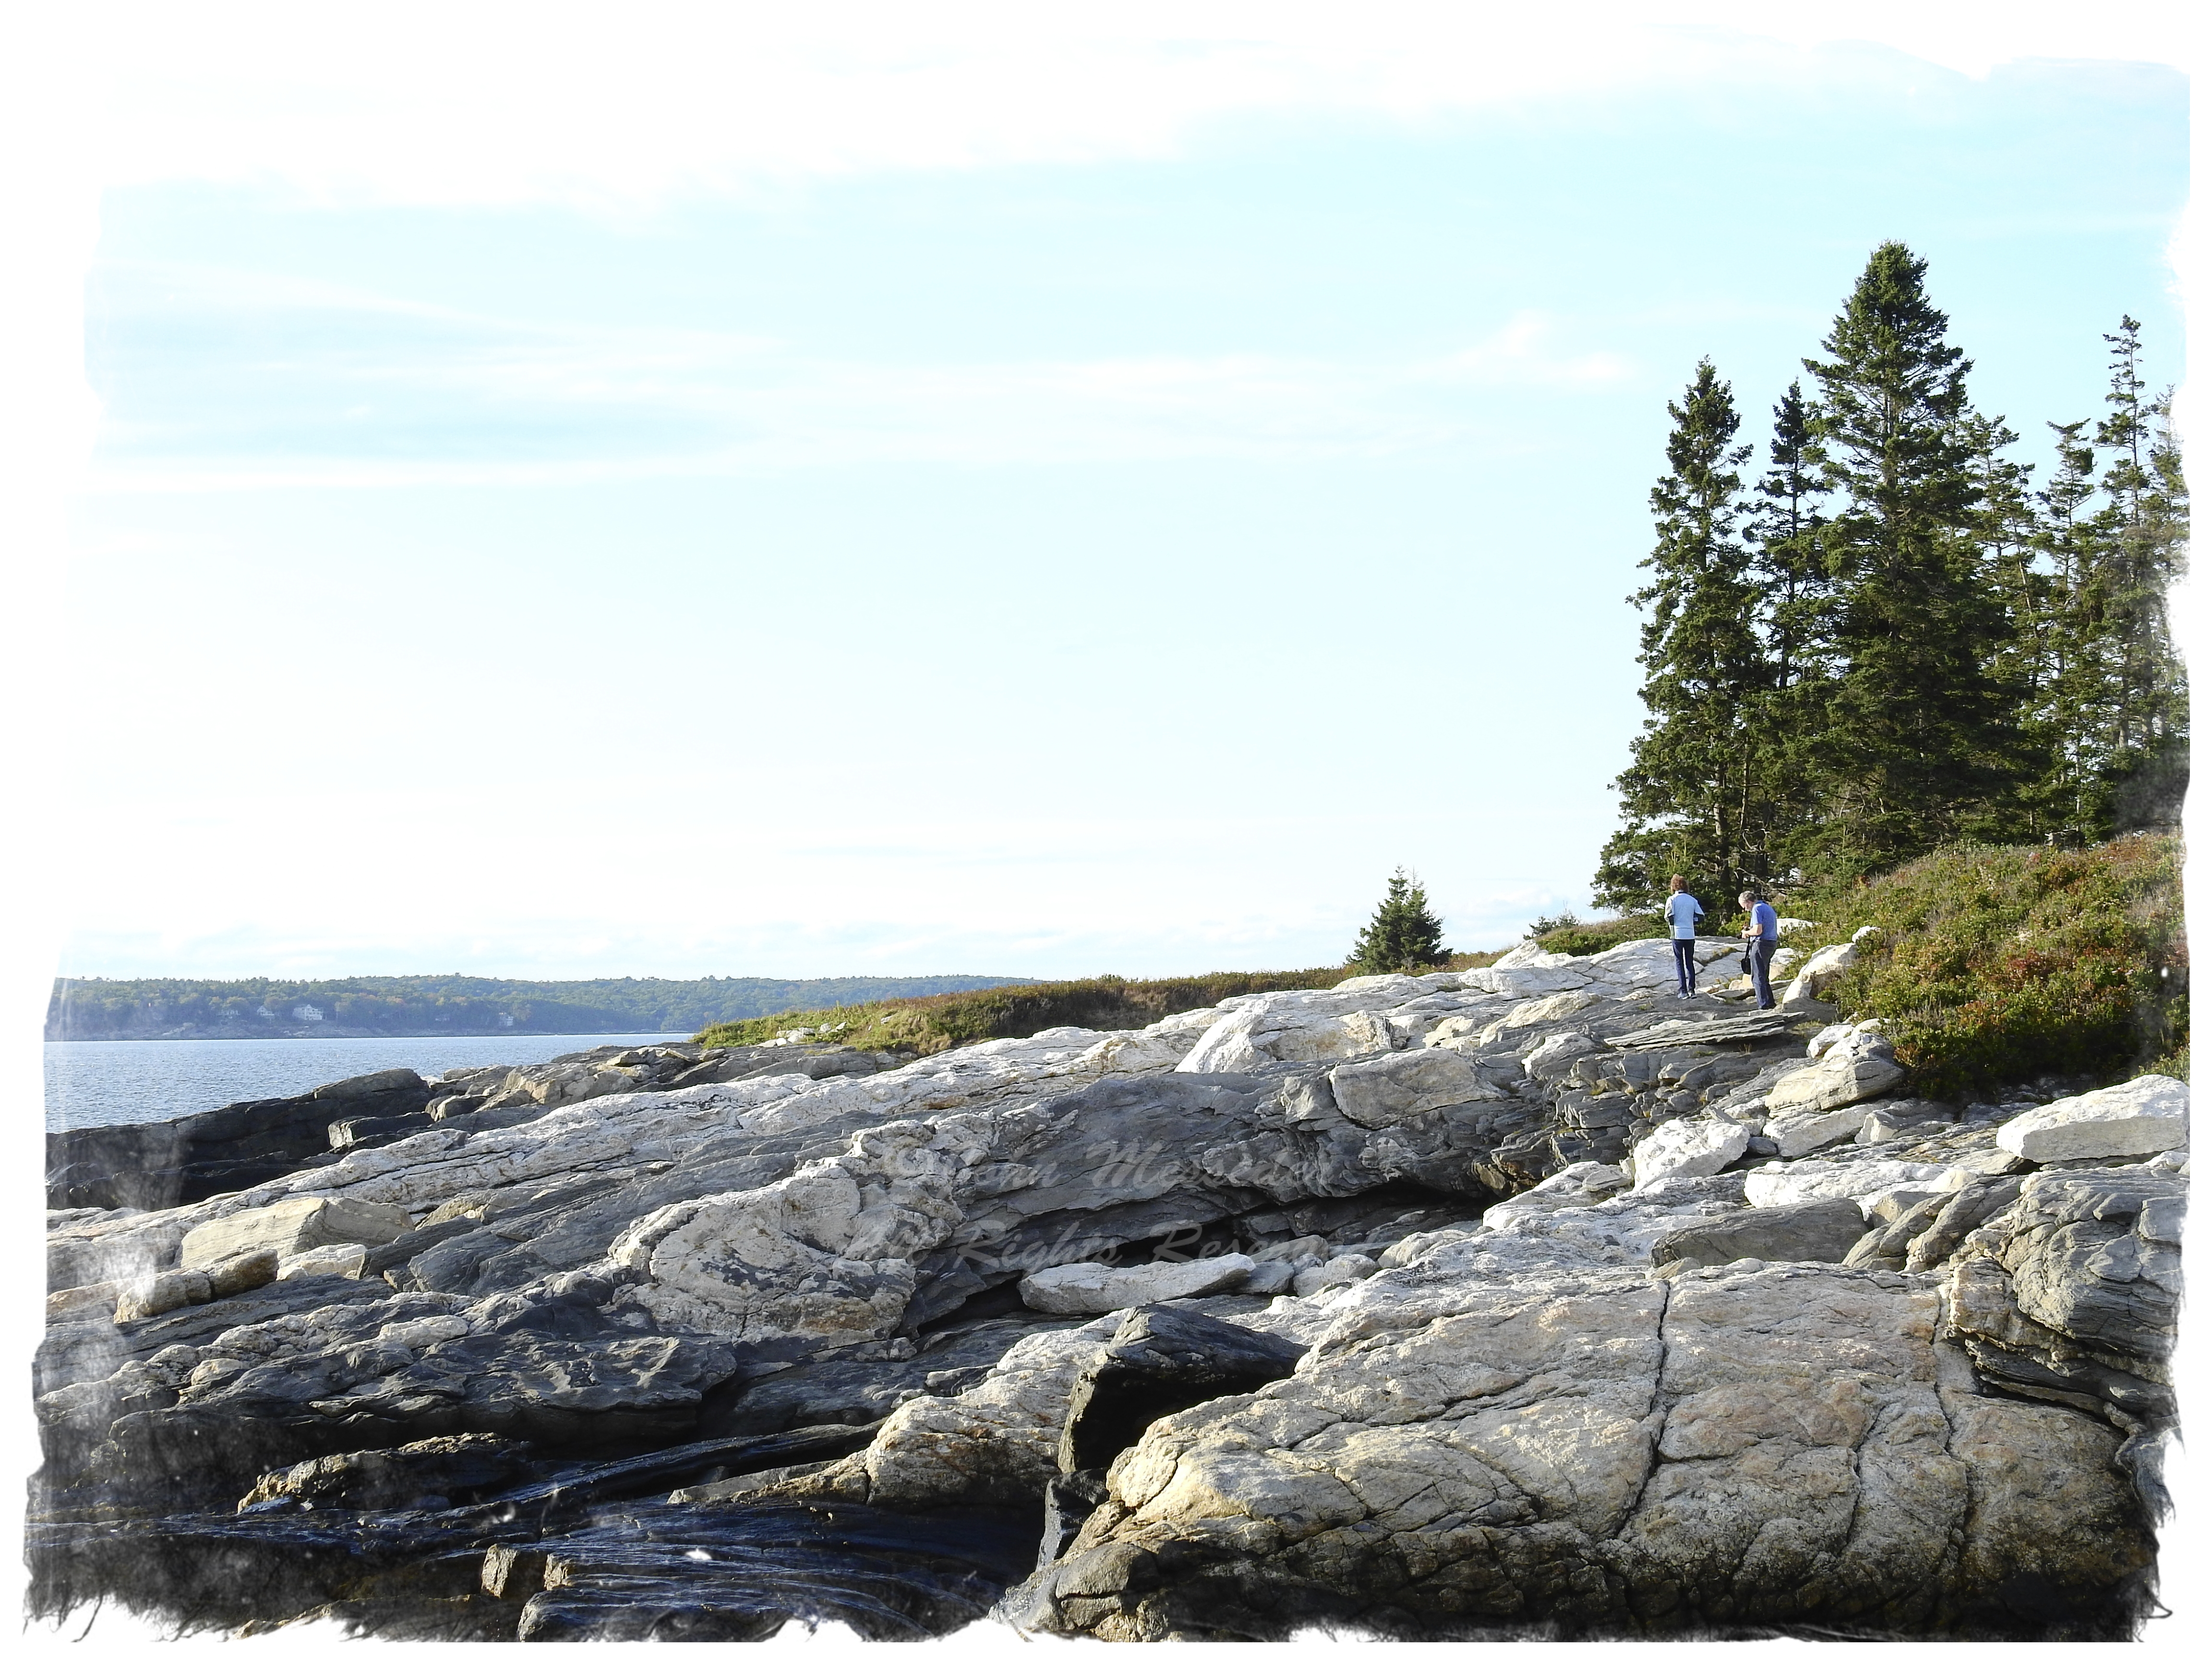 The coast of Maine is like very old chocolate, raged where it's broken off.